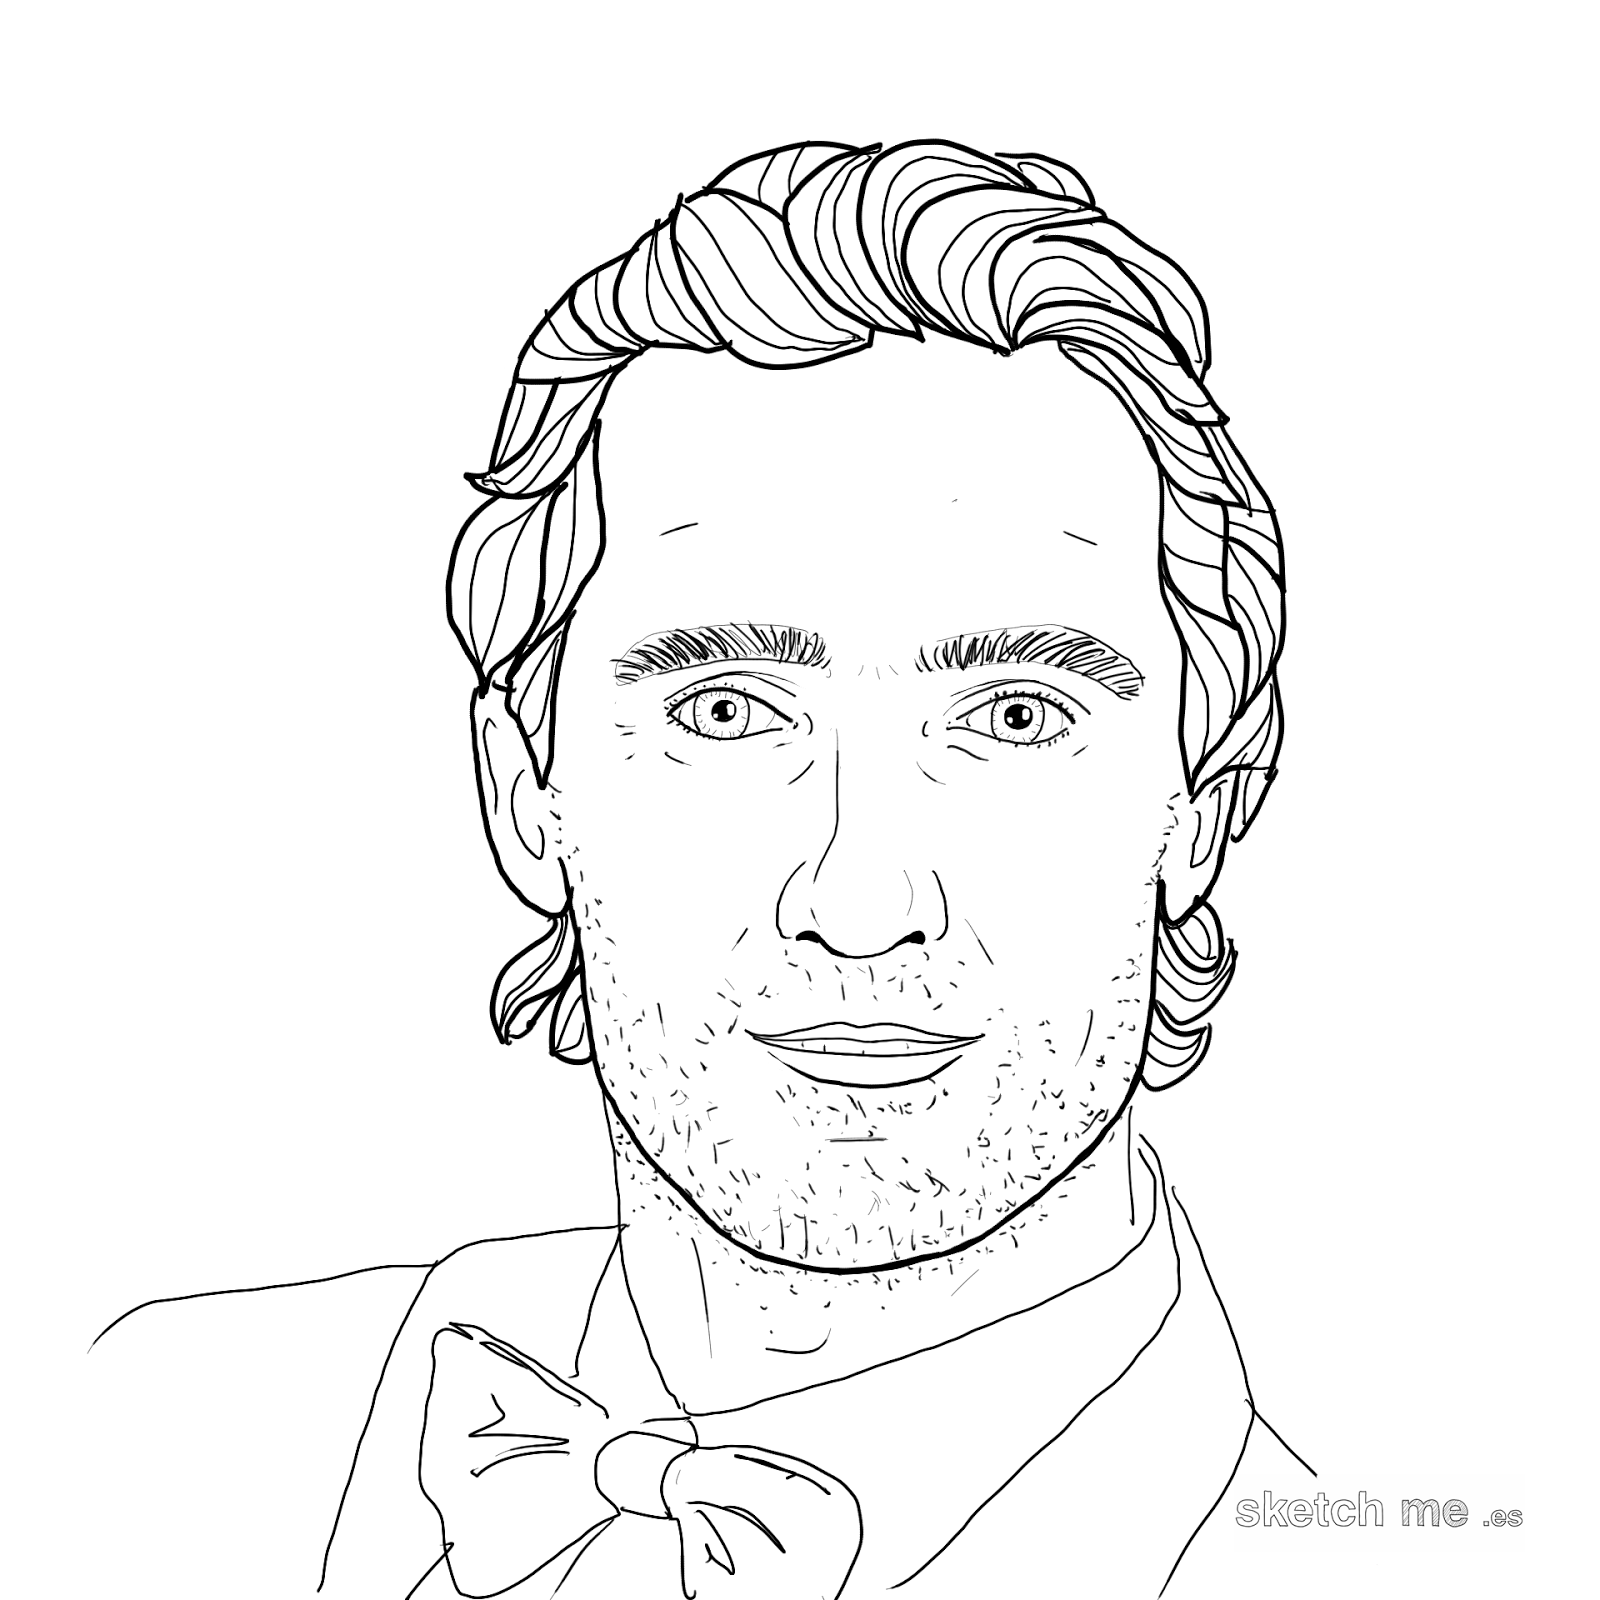 Matthew-McConaughey-sketch-me-custom-portraits-for-facebook-and-twitter-profiles-retratos-personalizados-dibujados-a-mano